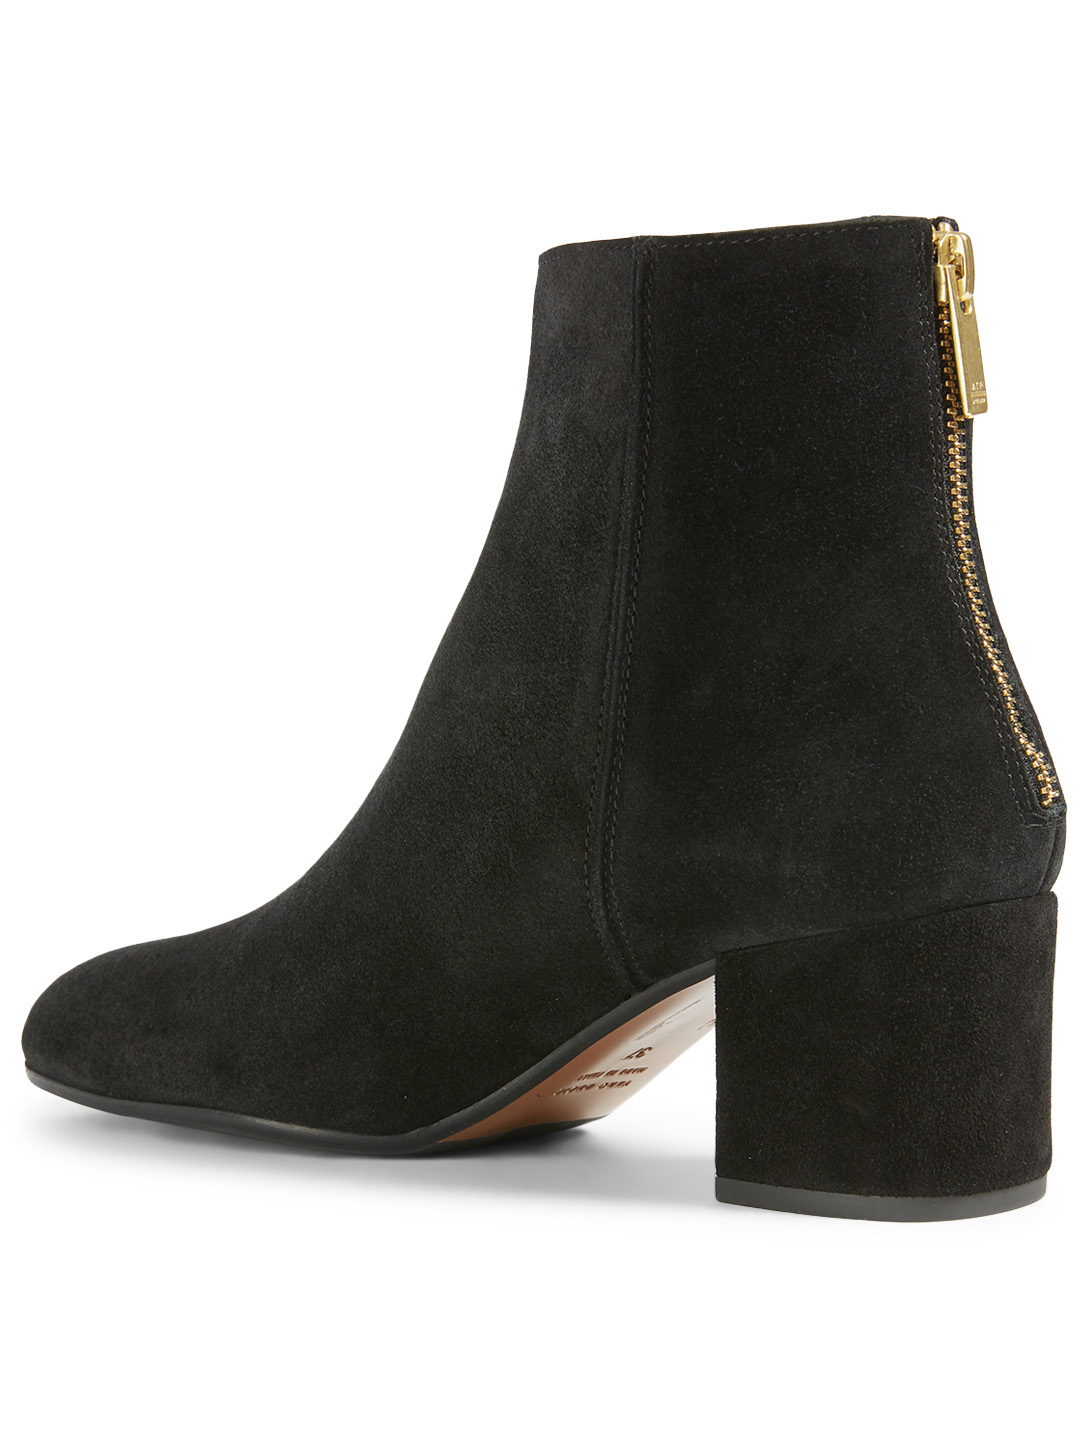 ATP ATELIER Mei Suede Heeled Ankle Boots Women's Black